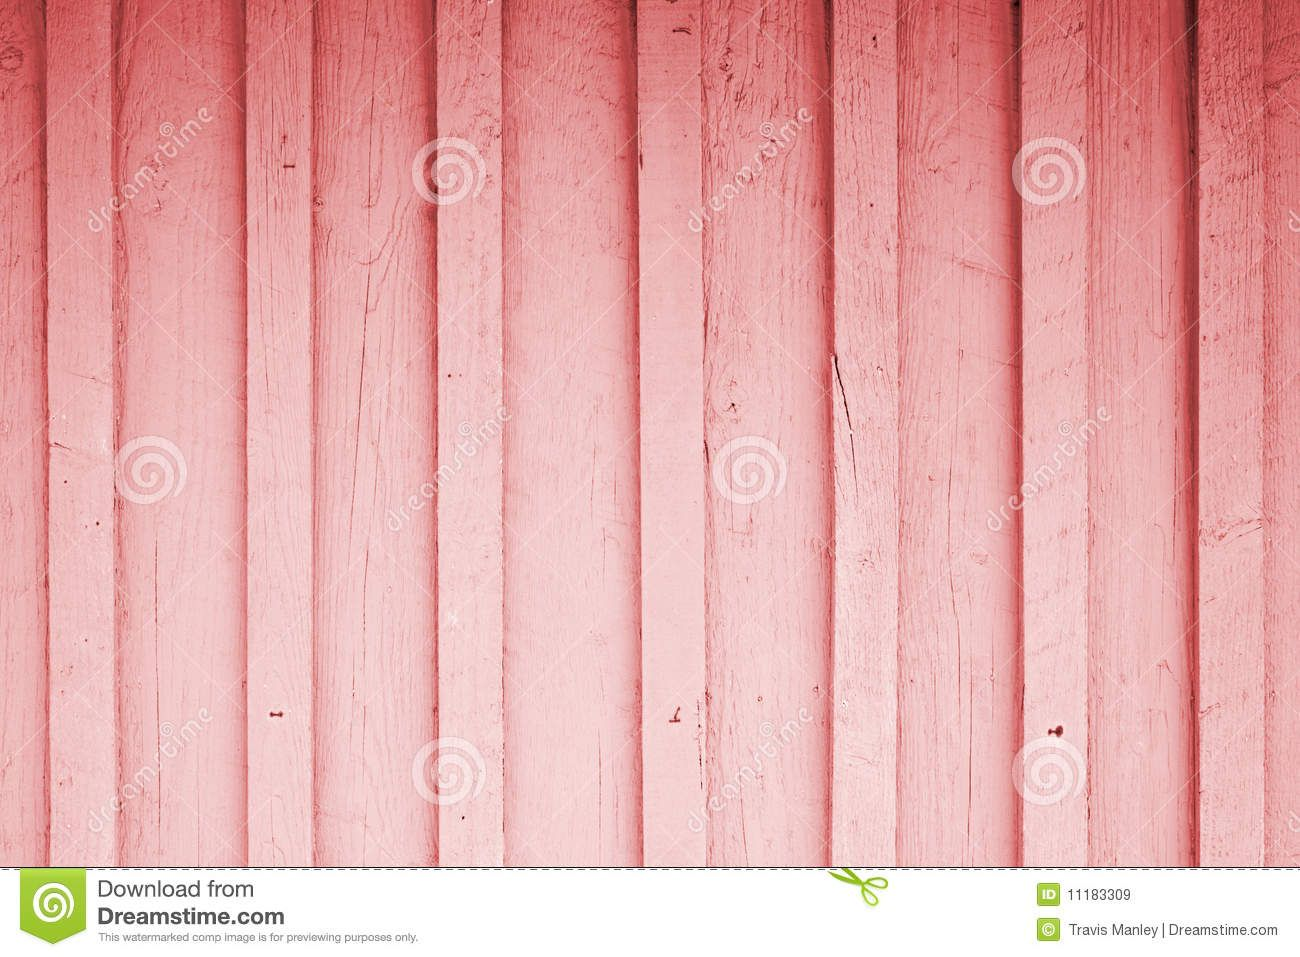 Images For > Vertical Wood Siding Texture | Lyons Exterior Materials ...